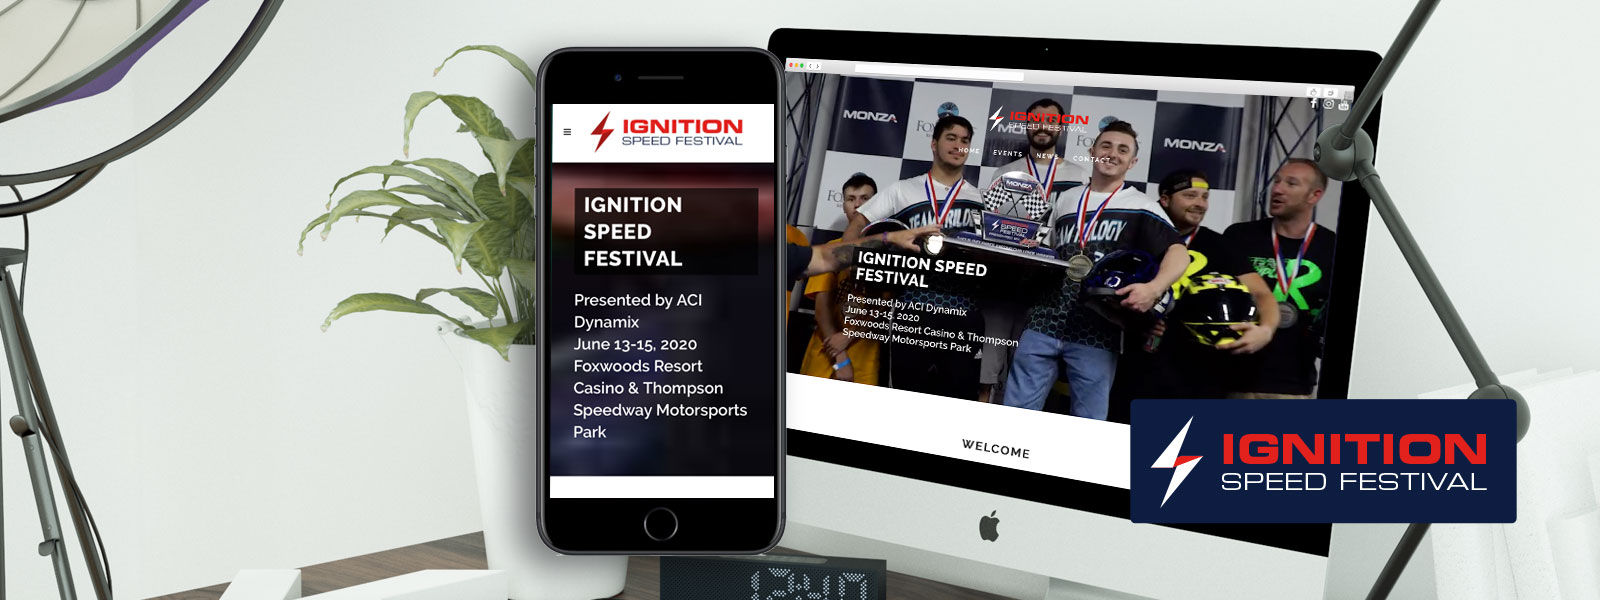 Ignition Speed Festival